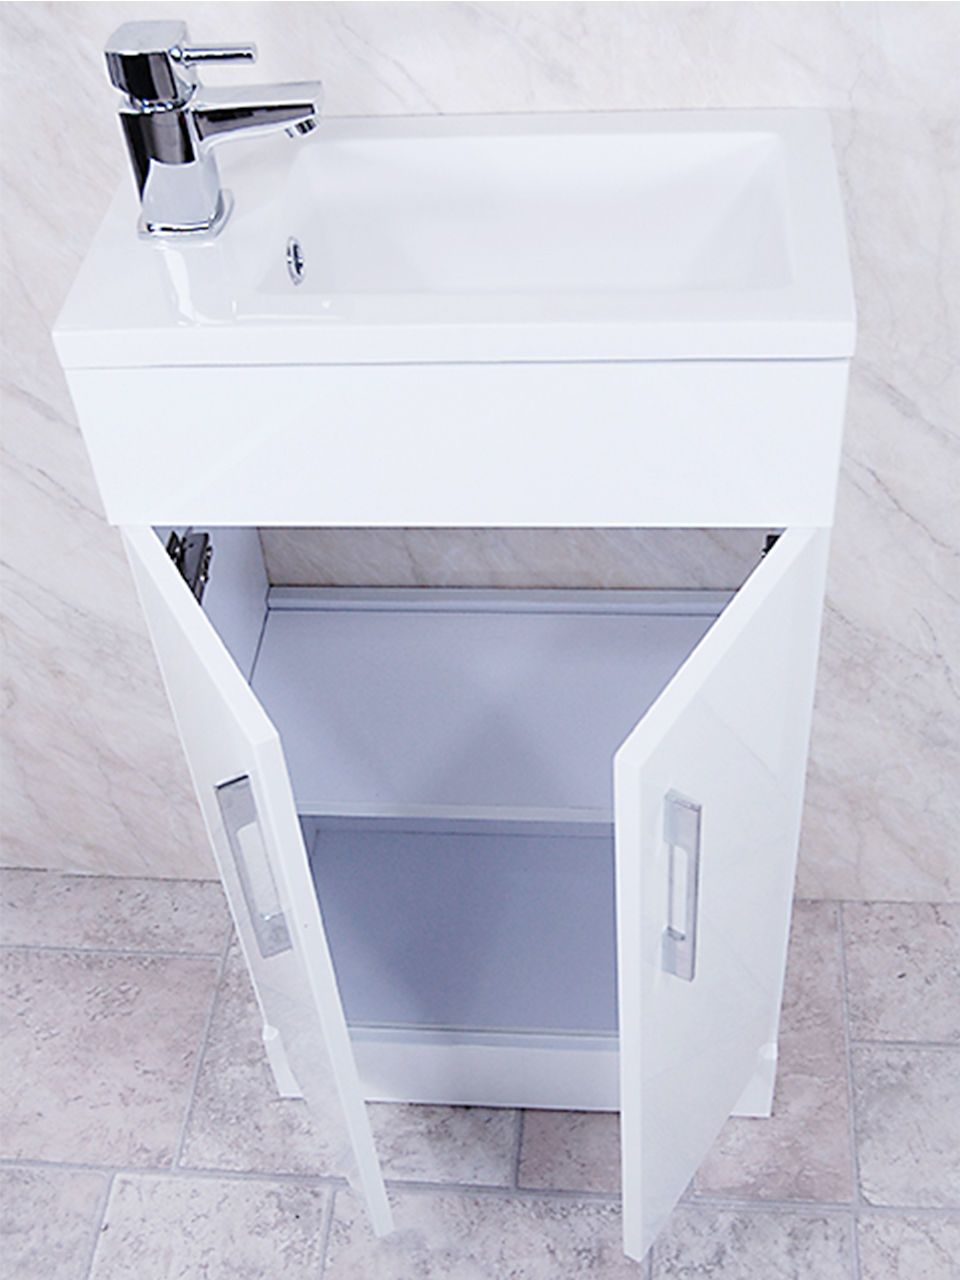 White Square Basin Vanity Unit Bathroom Compact Cloakroom Furniture ...